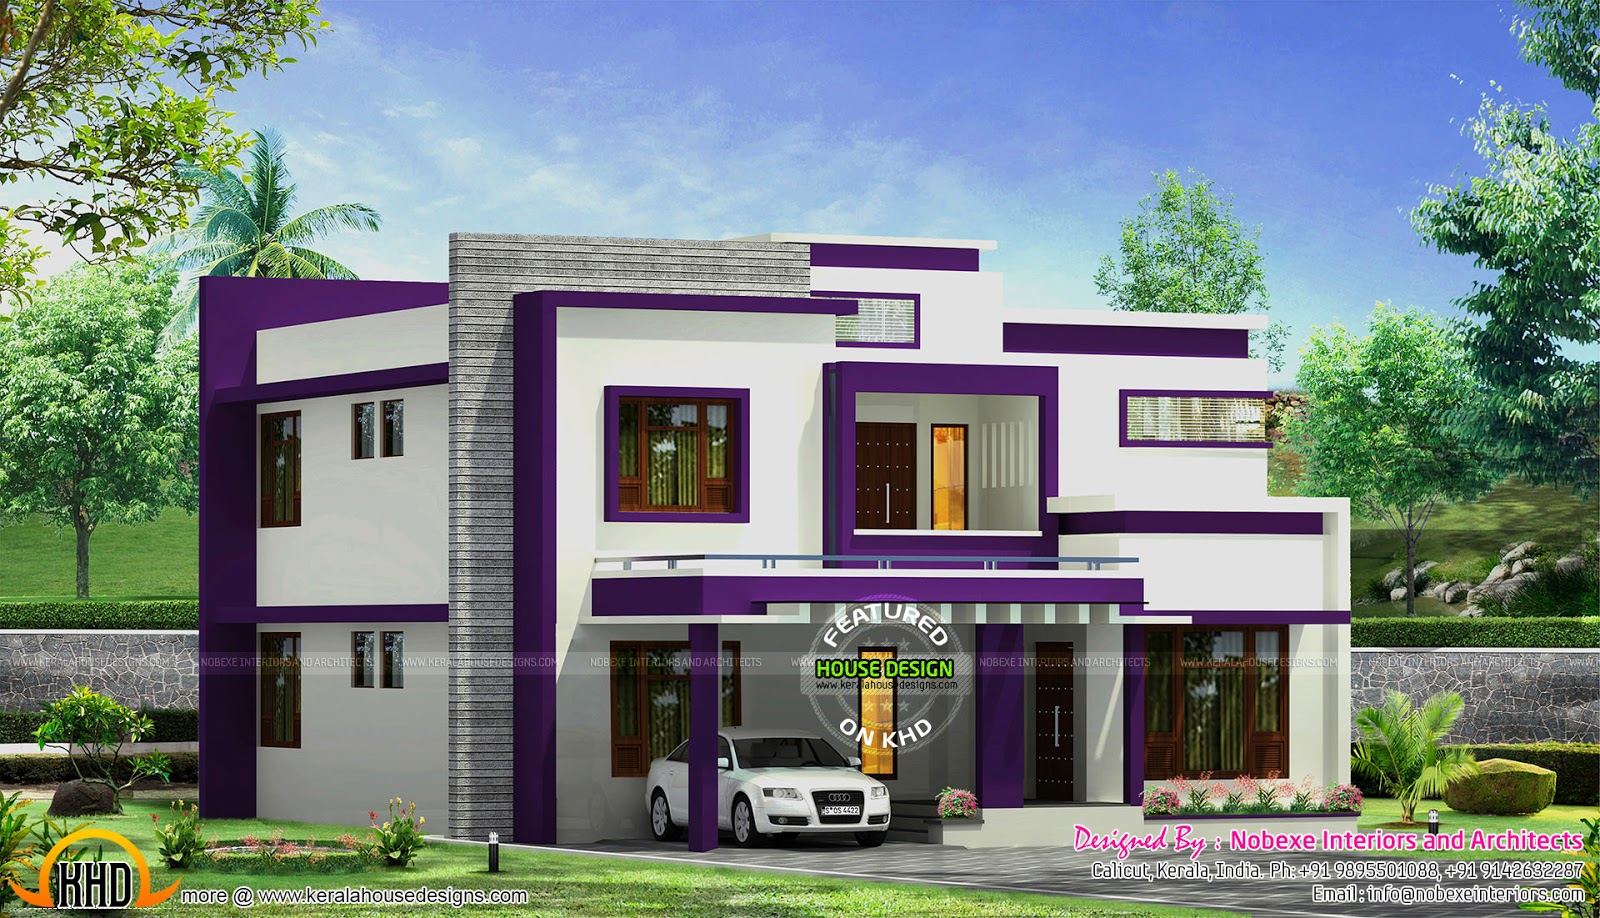 contemporary home design by nobexe interiors calicut kerala - Home Design Images